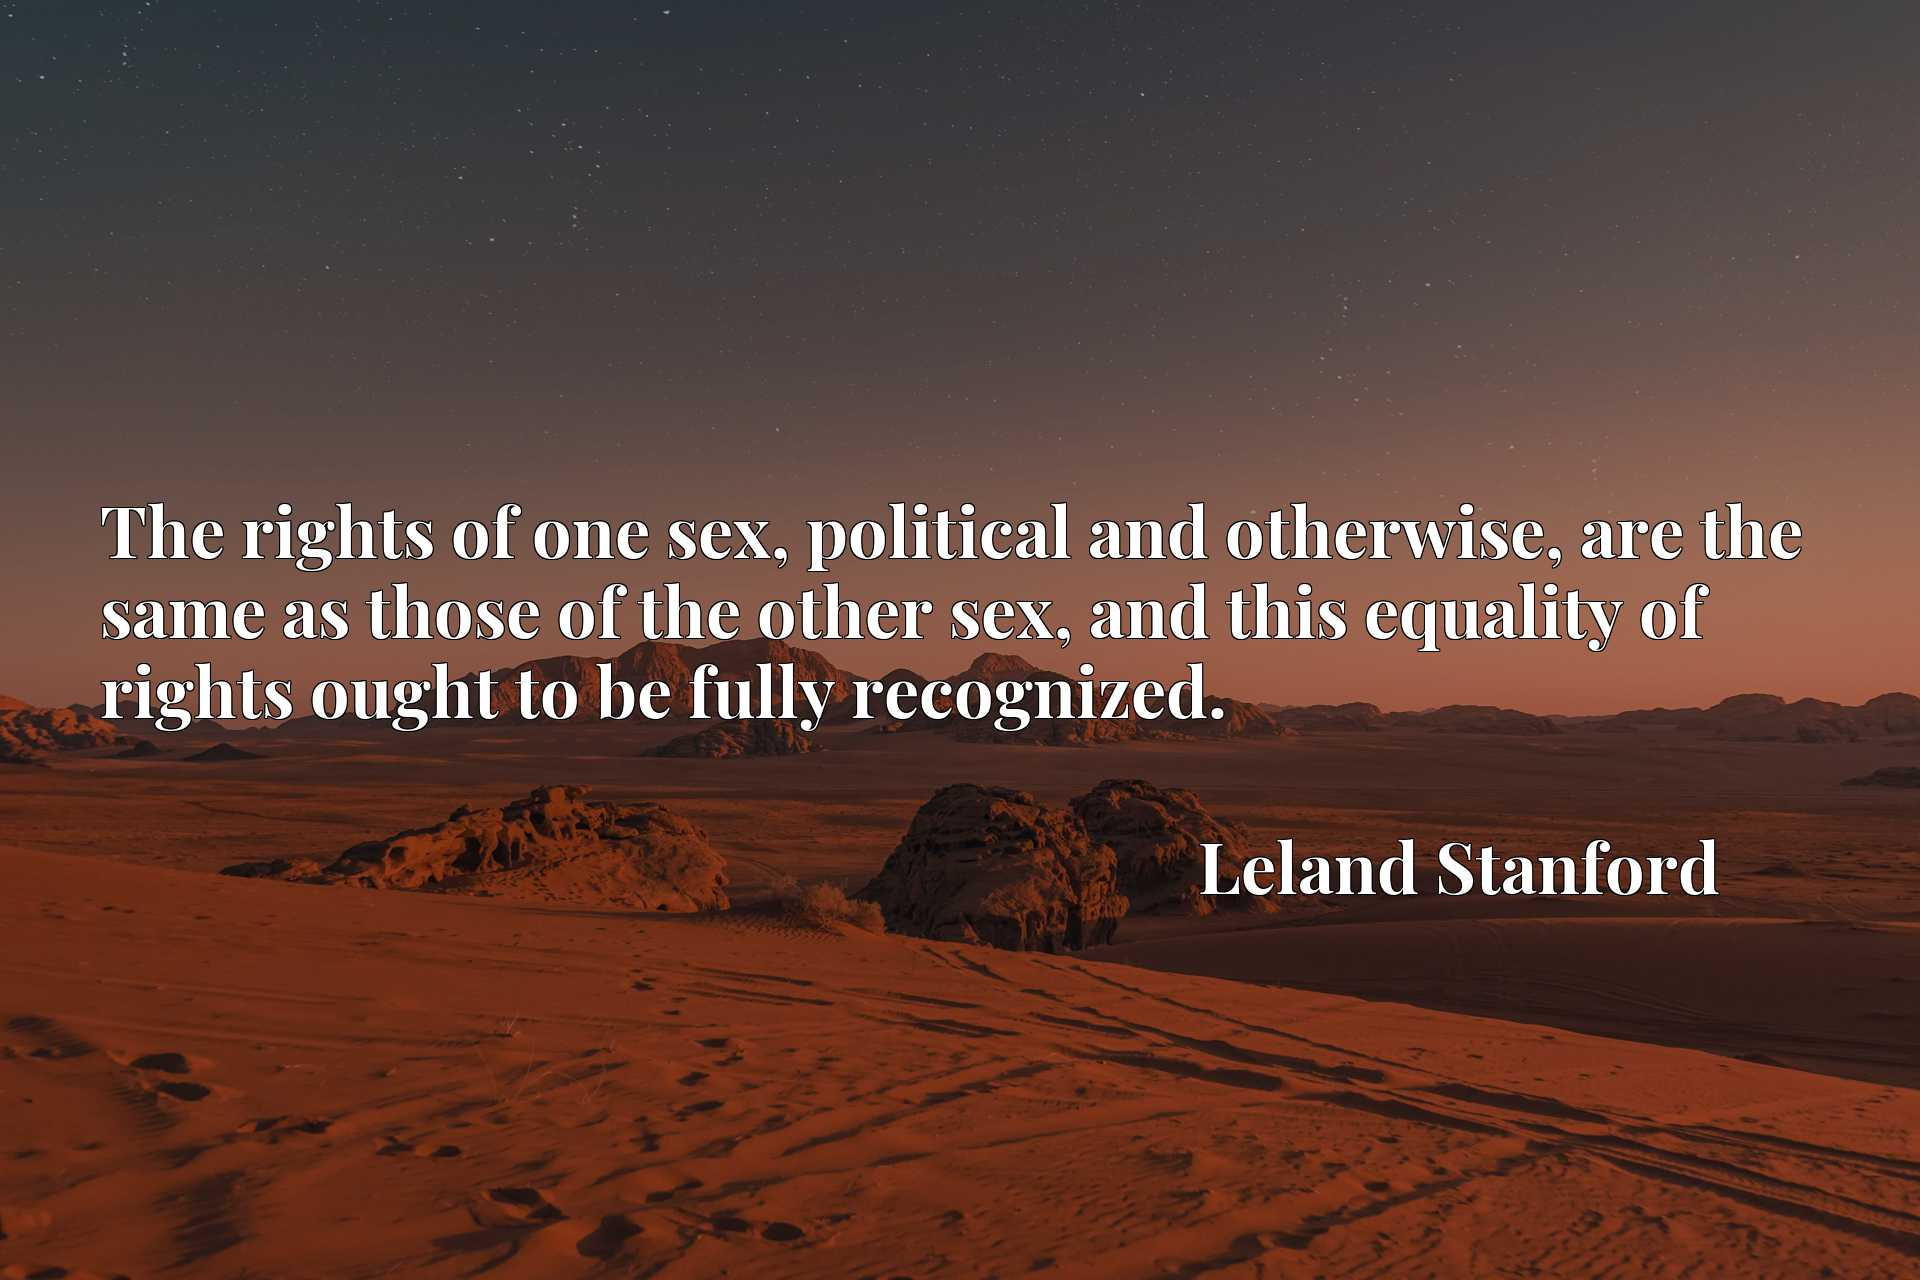 The rights of one sex, political and otherwise, are the same as those of the other sex, and this equality of rights ought to be fully recognized.